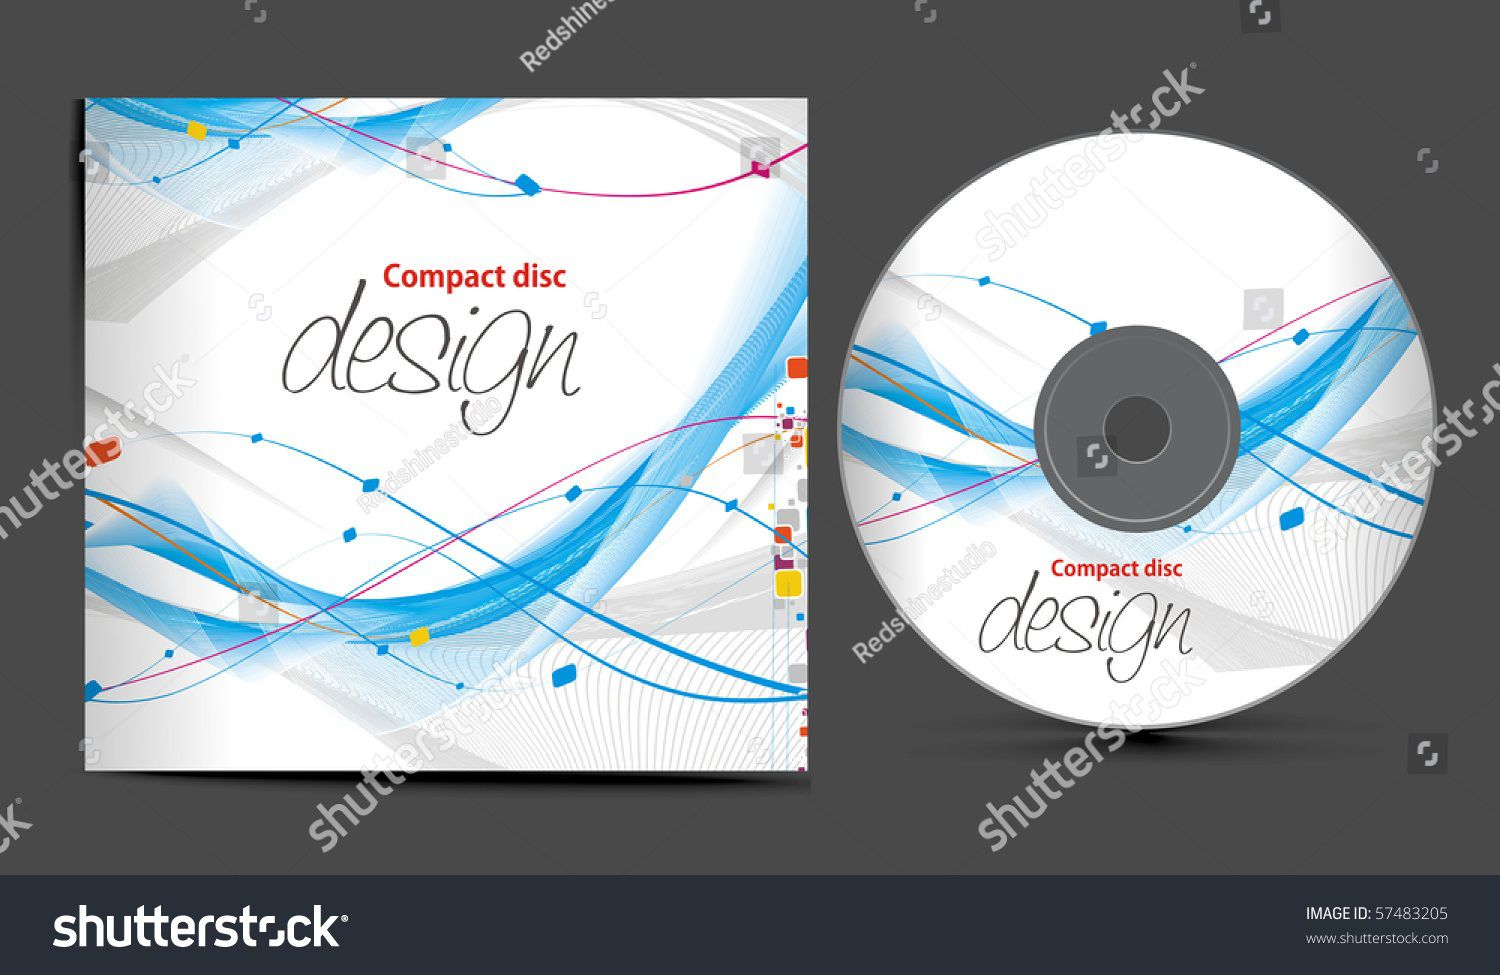 009 Stunning Cd Cover Design Template Highest Quality  Free Vector Illustration Word Psd DownloadFull